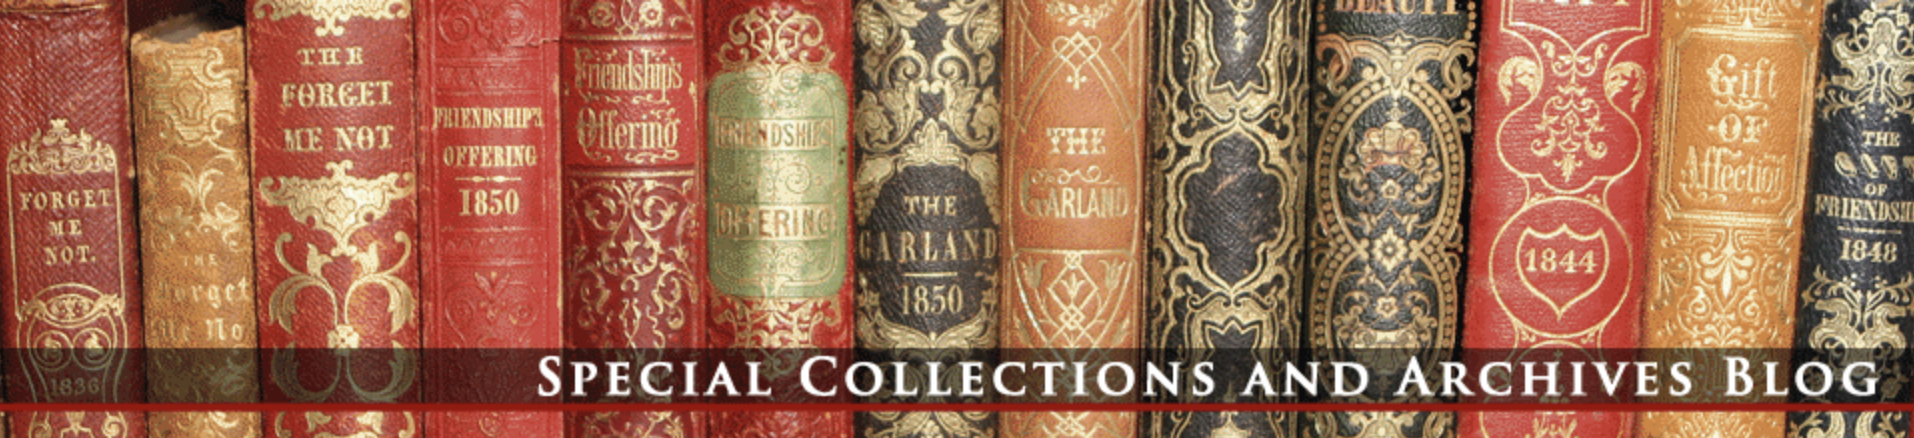 Special Collections & Archives at Wesleyan University